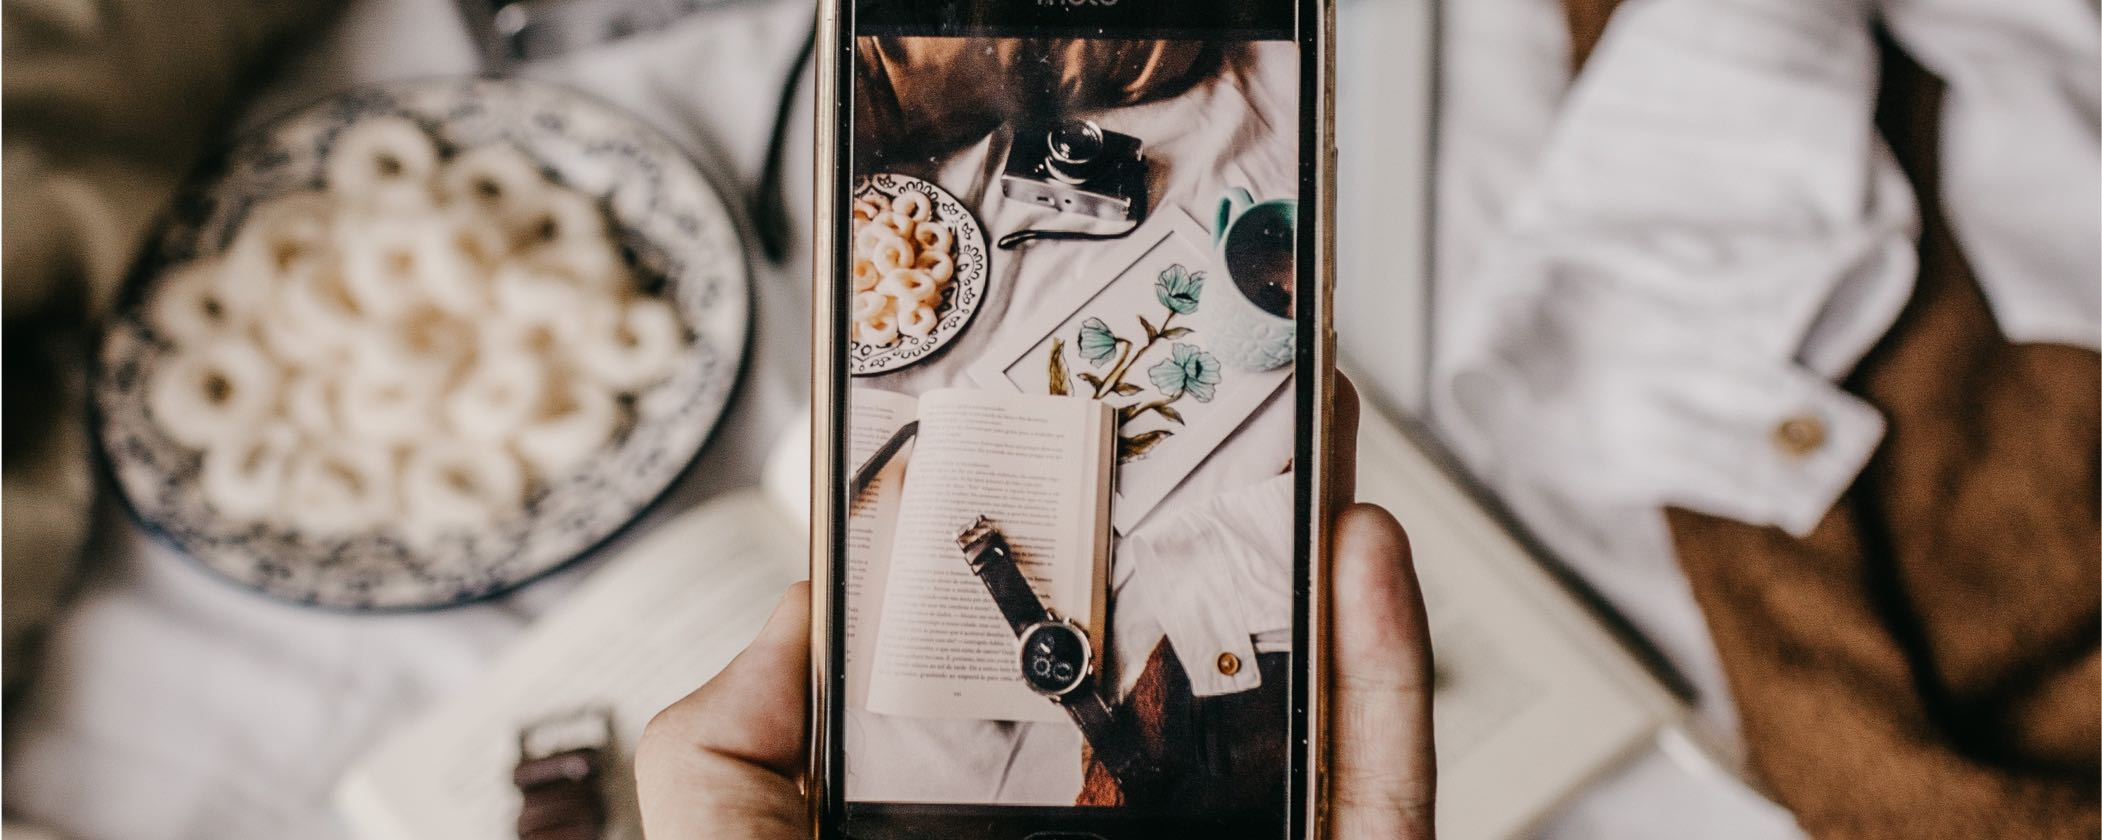 Best Practices for Mindfully Growing Your Instagram Following